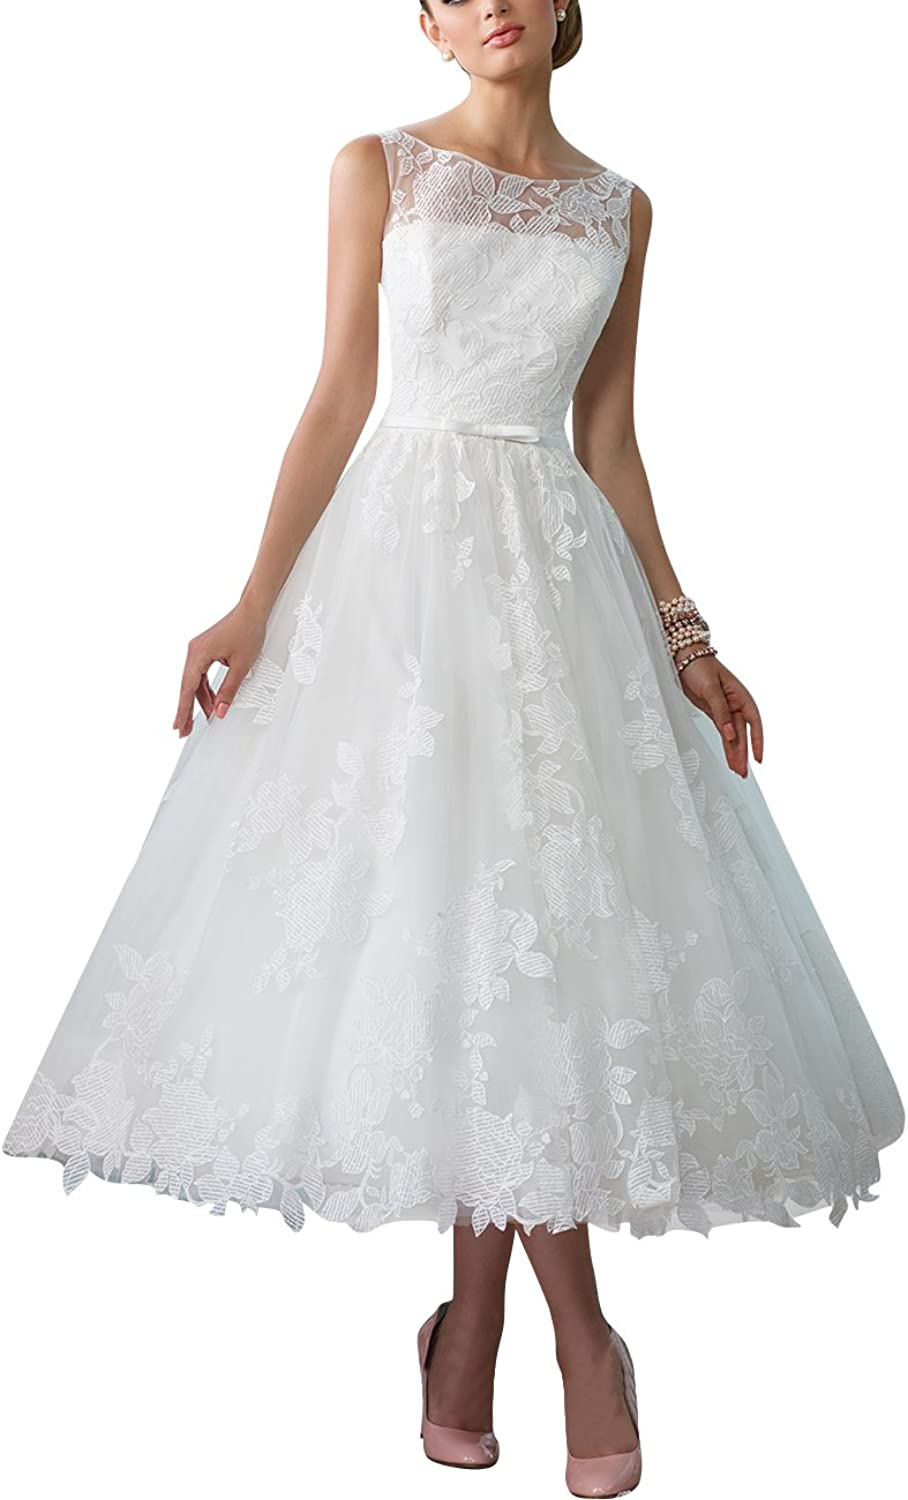 Cdress Flora Lace Short Wedding Dresses Tulle Bridal Gowns Tea Length with Bow Belt